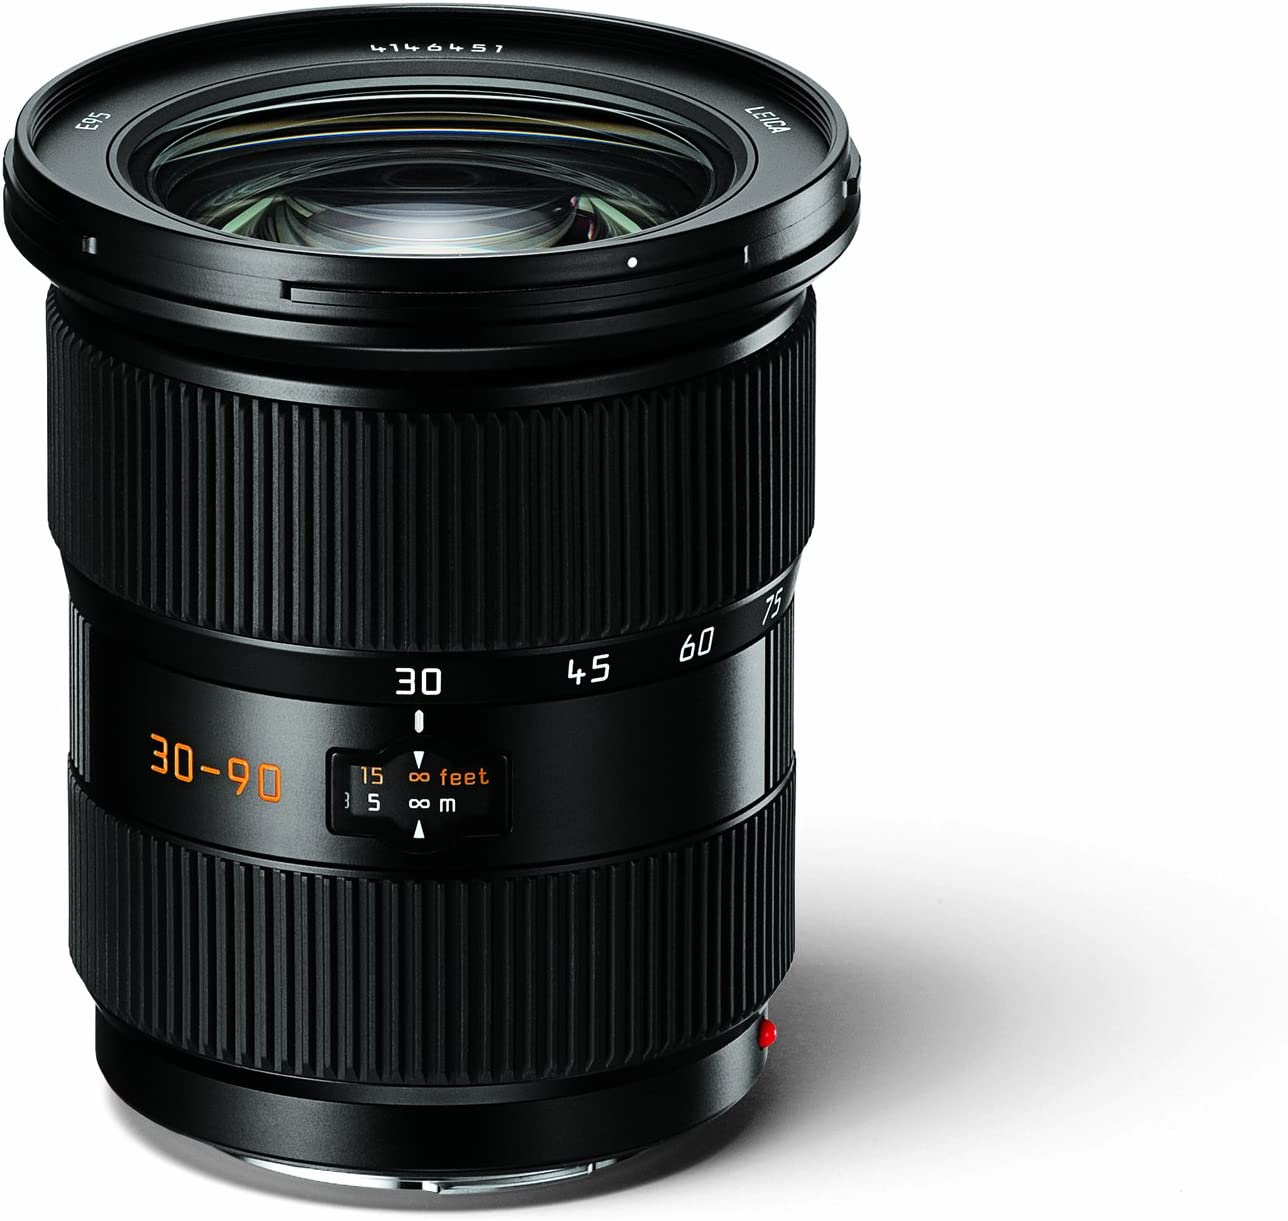 NEW before selling Leica 11058 Ranking TOP7 Vario-Elmar-S 30-90mm f3.5-5.6 Interchangeable ASPH